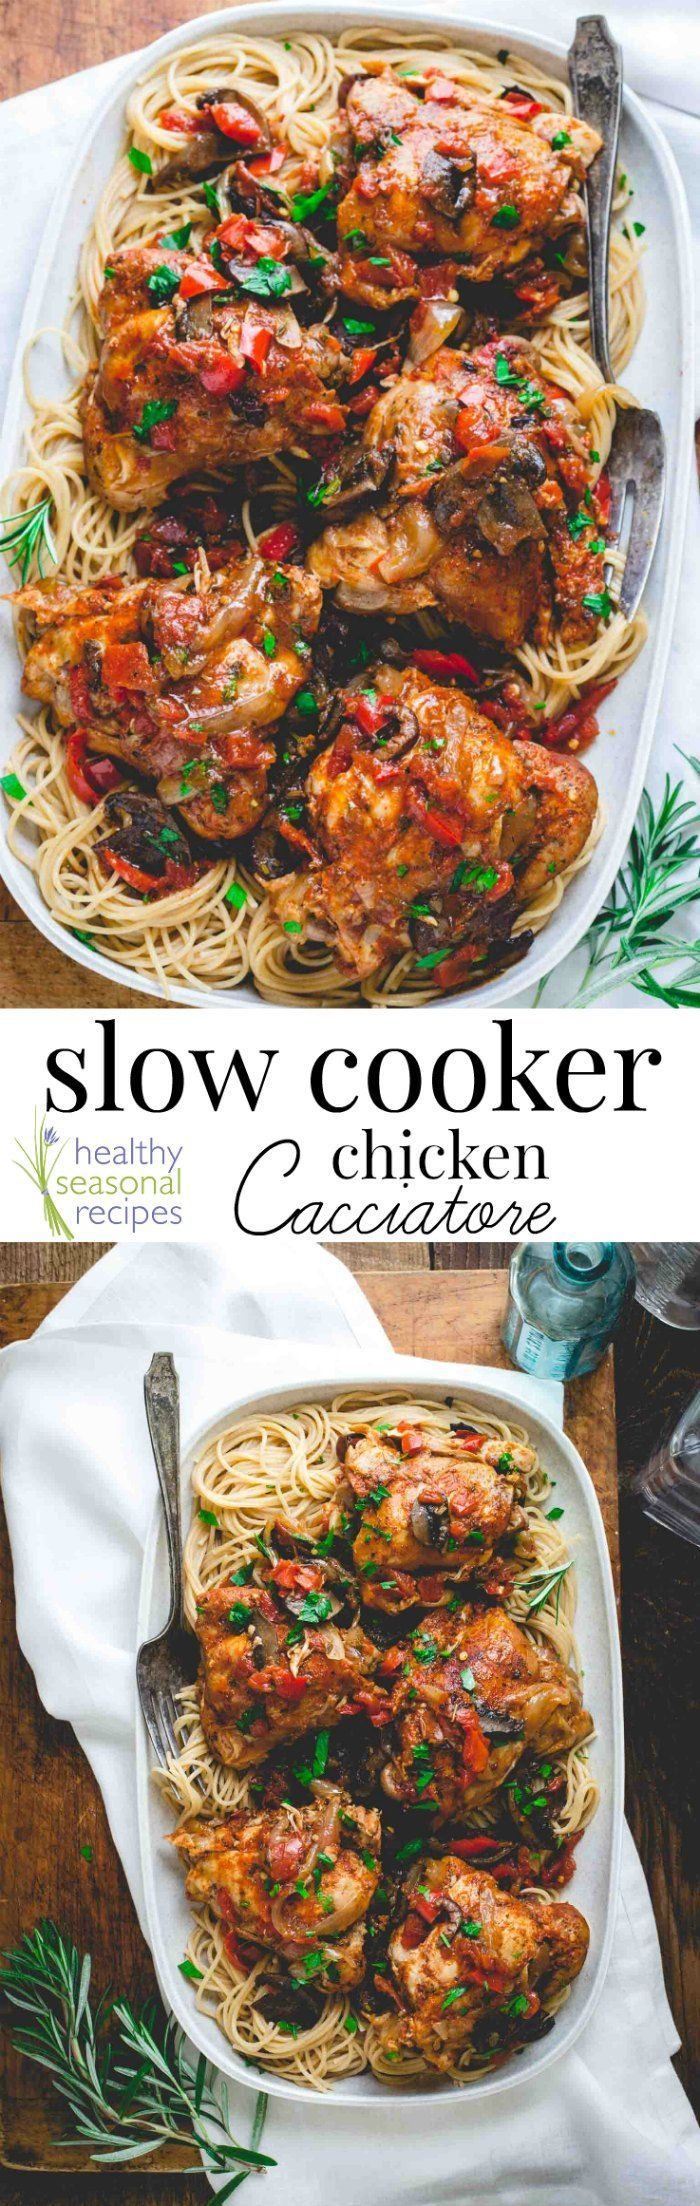 Blog post at Healthy Seasonal Recipes : This Slow Cooker Chicken Cacciatore is the latest in the series of healthy re-makes of the best classic comfort food recipes. Chicken Cacci[..]